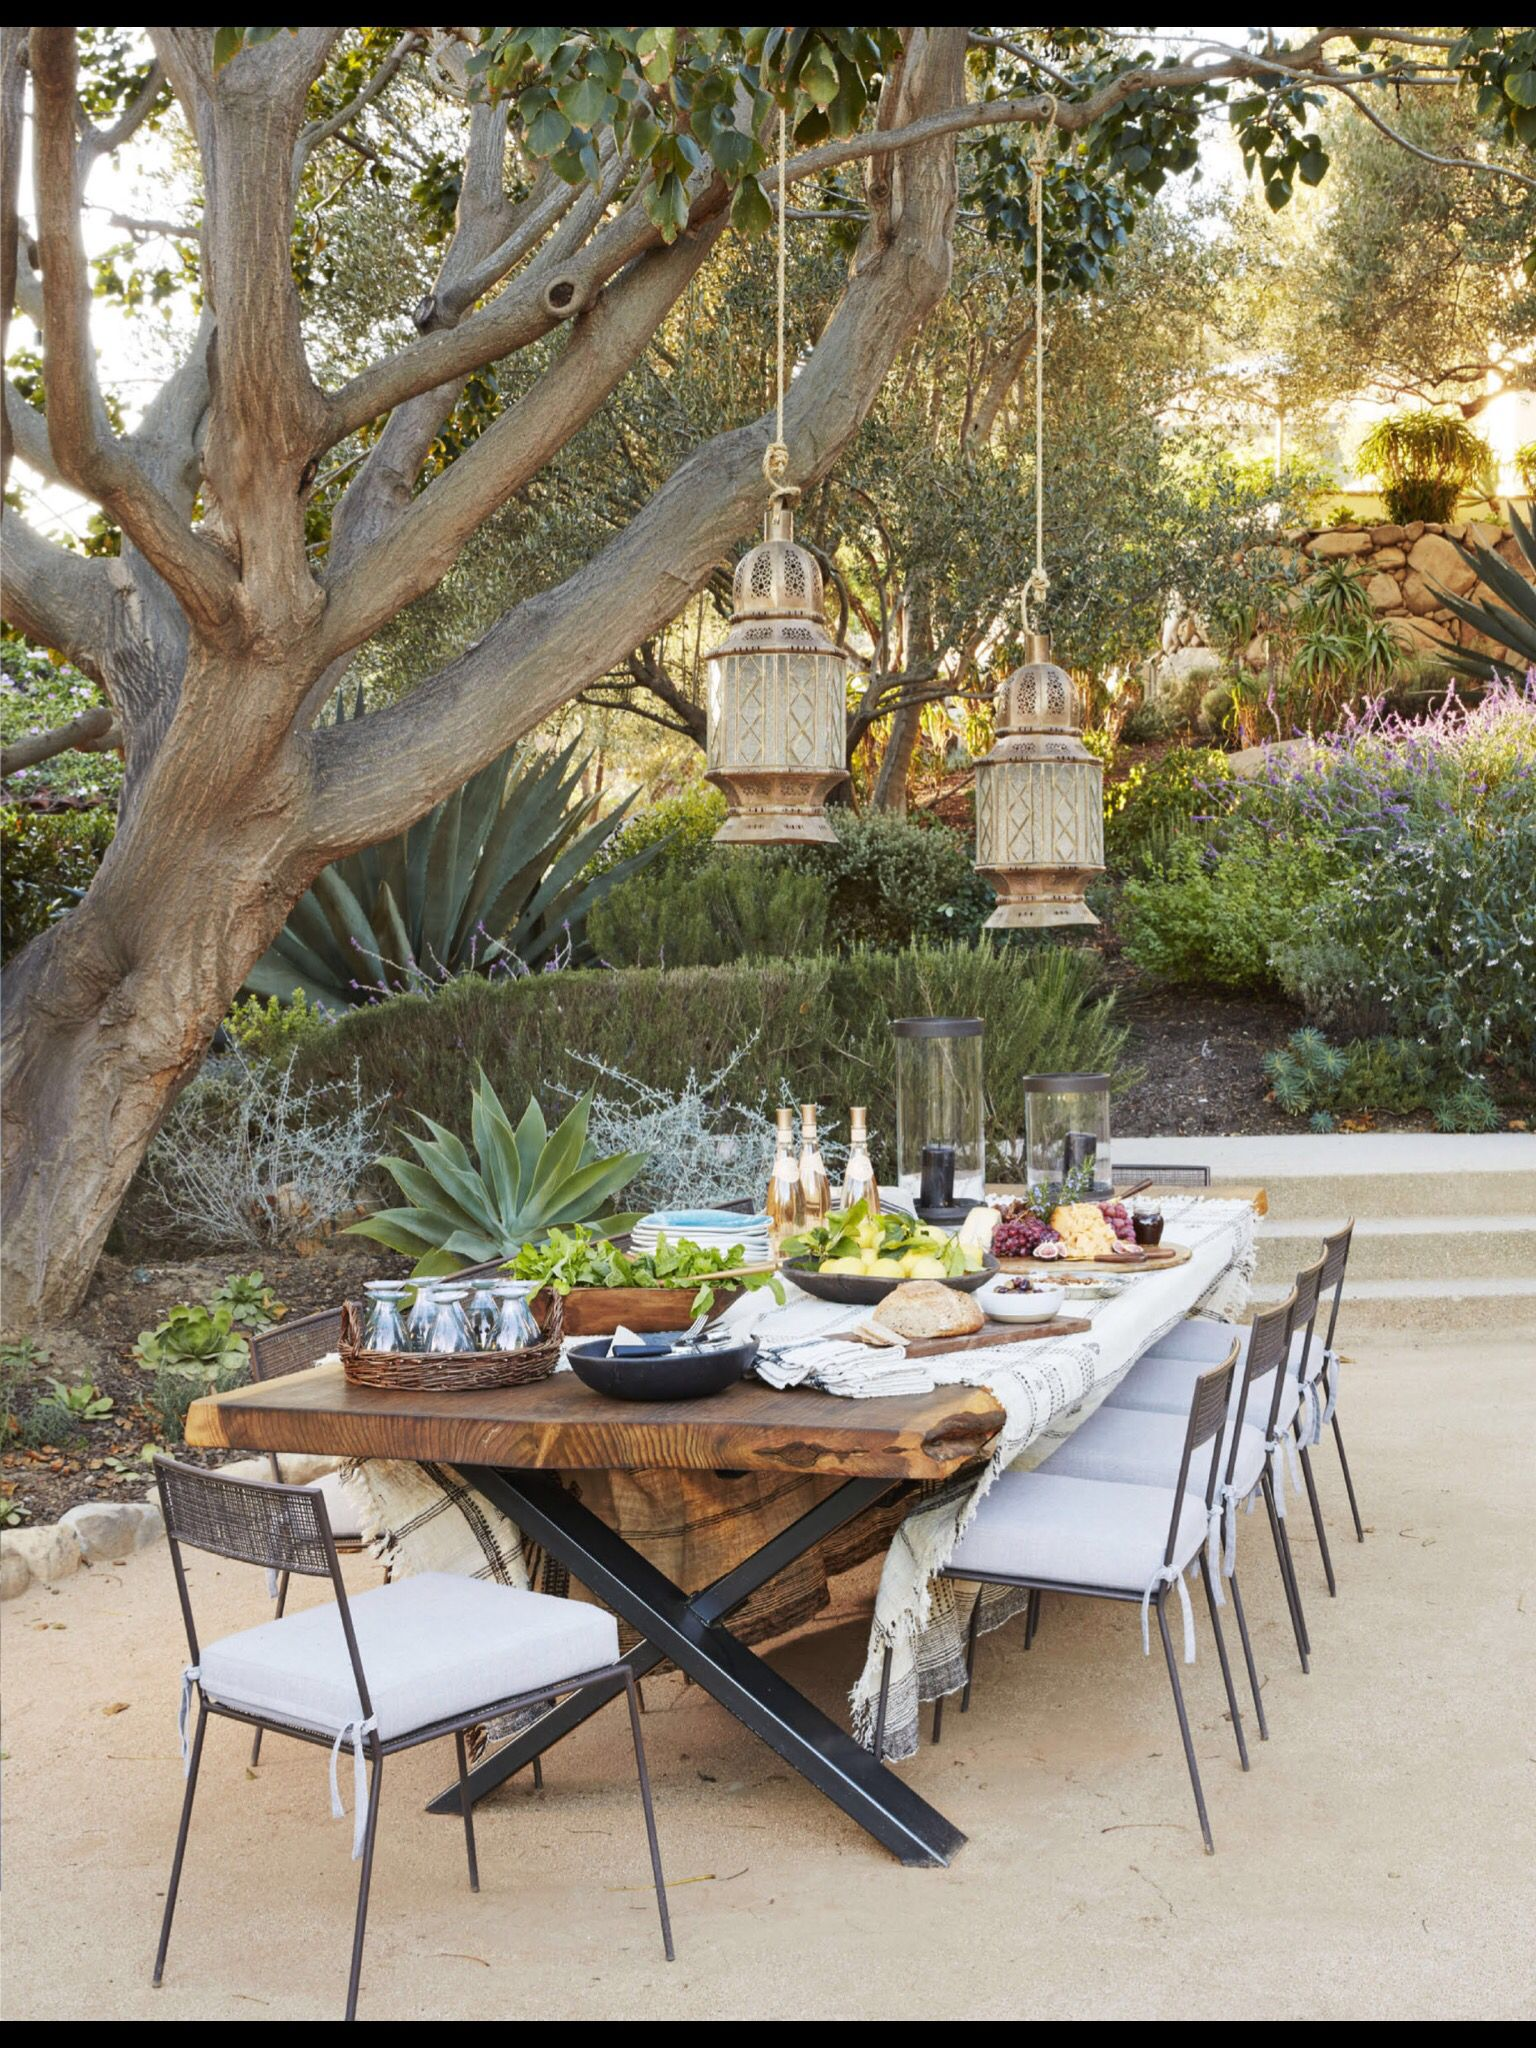 Backyard Dining An Exquisite Dining Area Underneath The Beautiful Trees With The Gorgeous Lamps Hanging Over Outdoor Dining Room Outdoor Dinner Backyard Patio